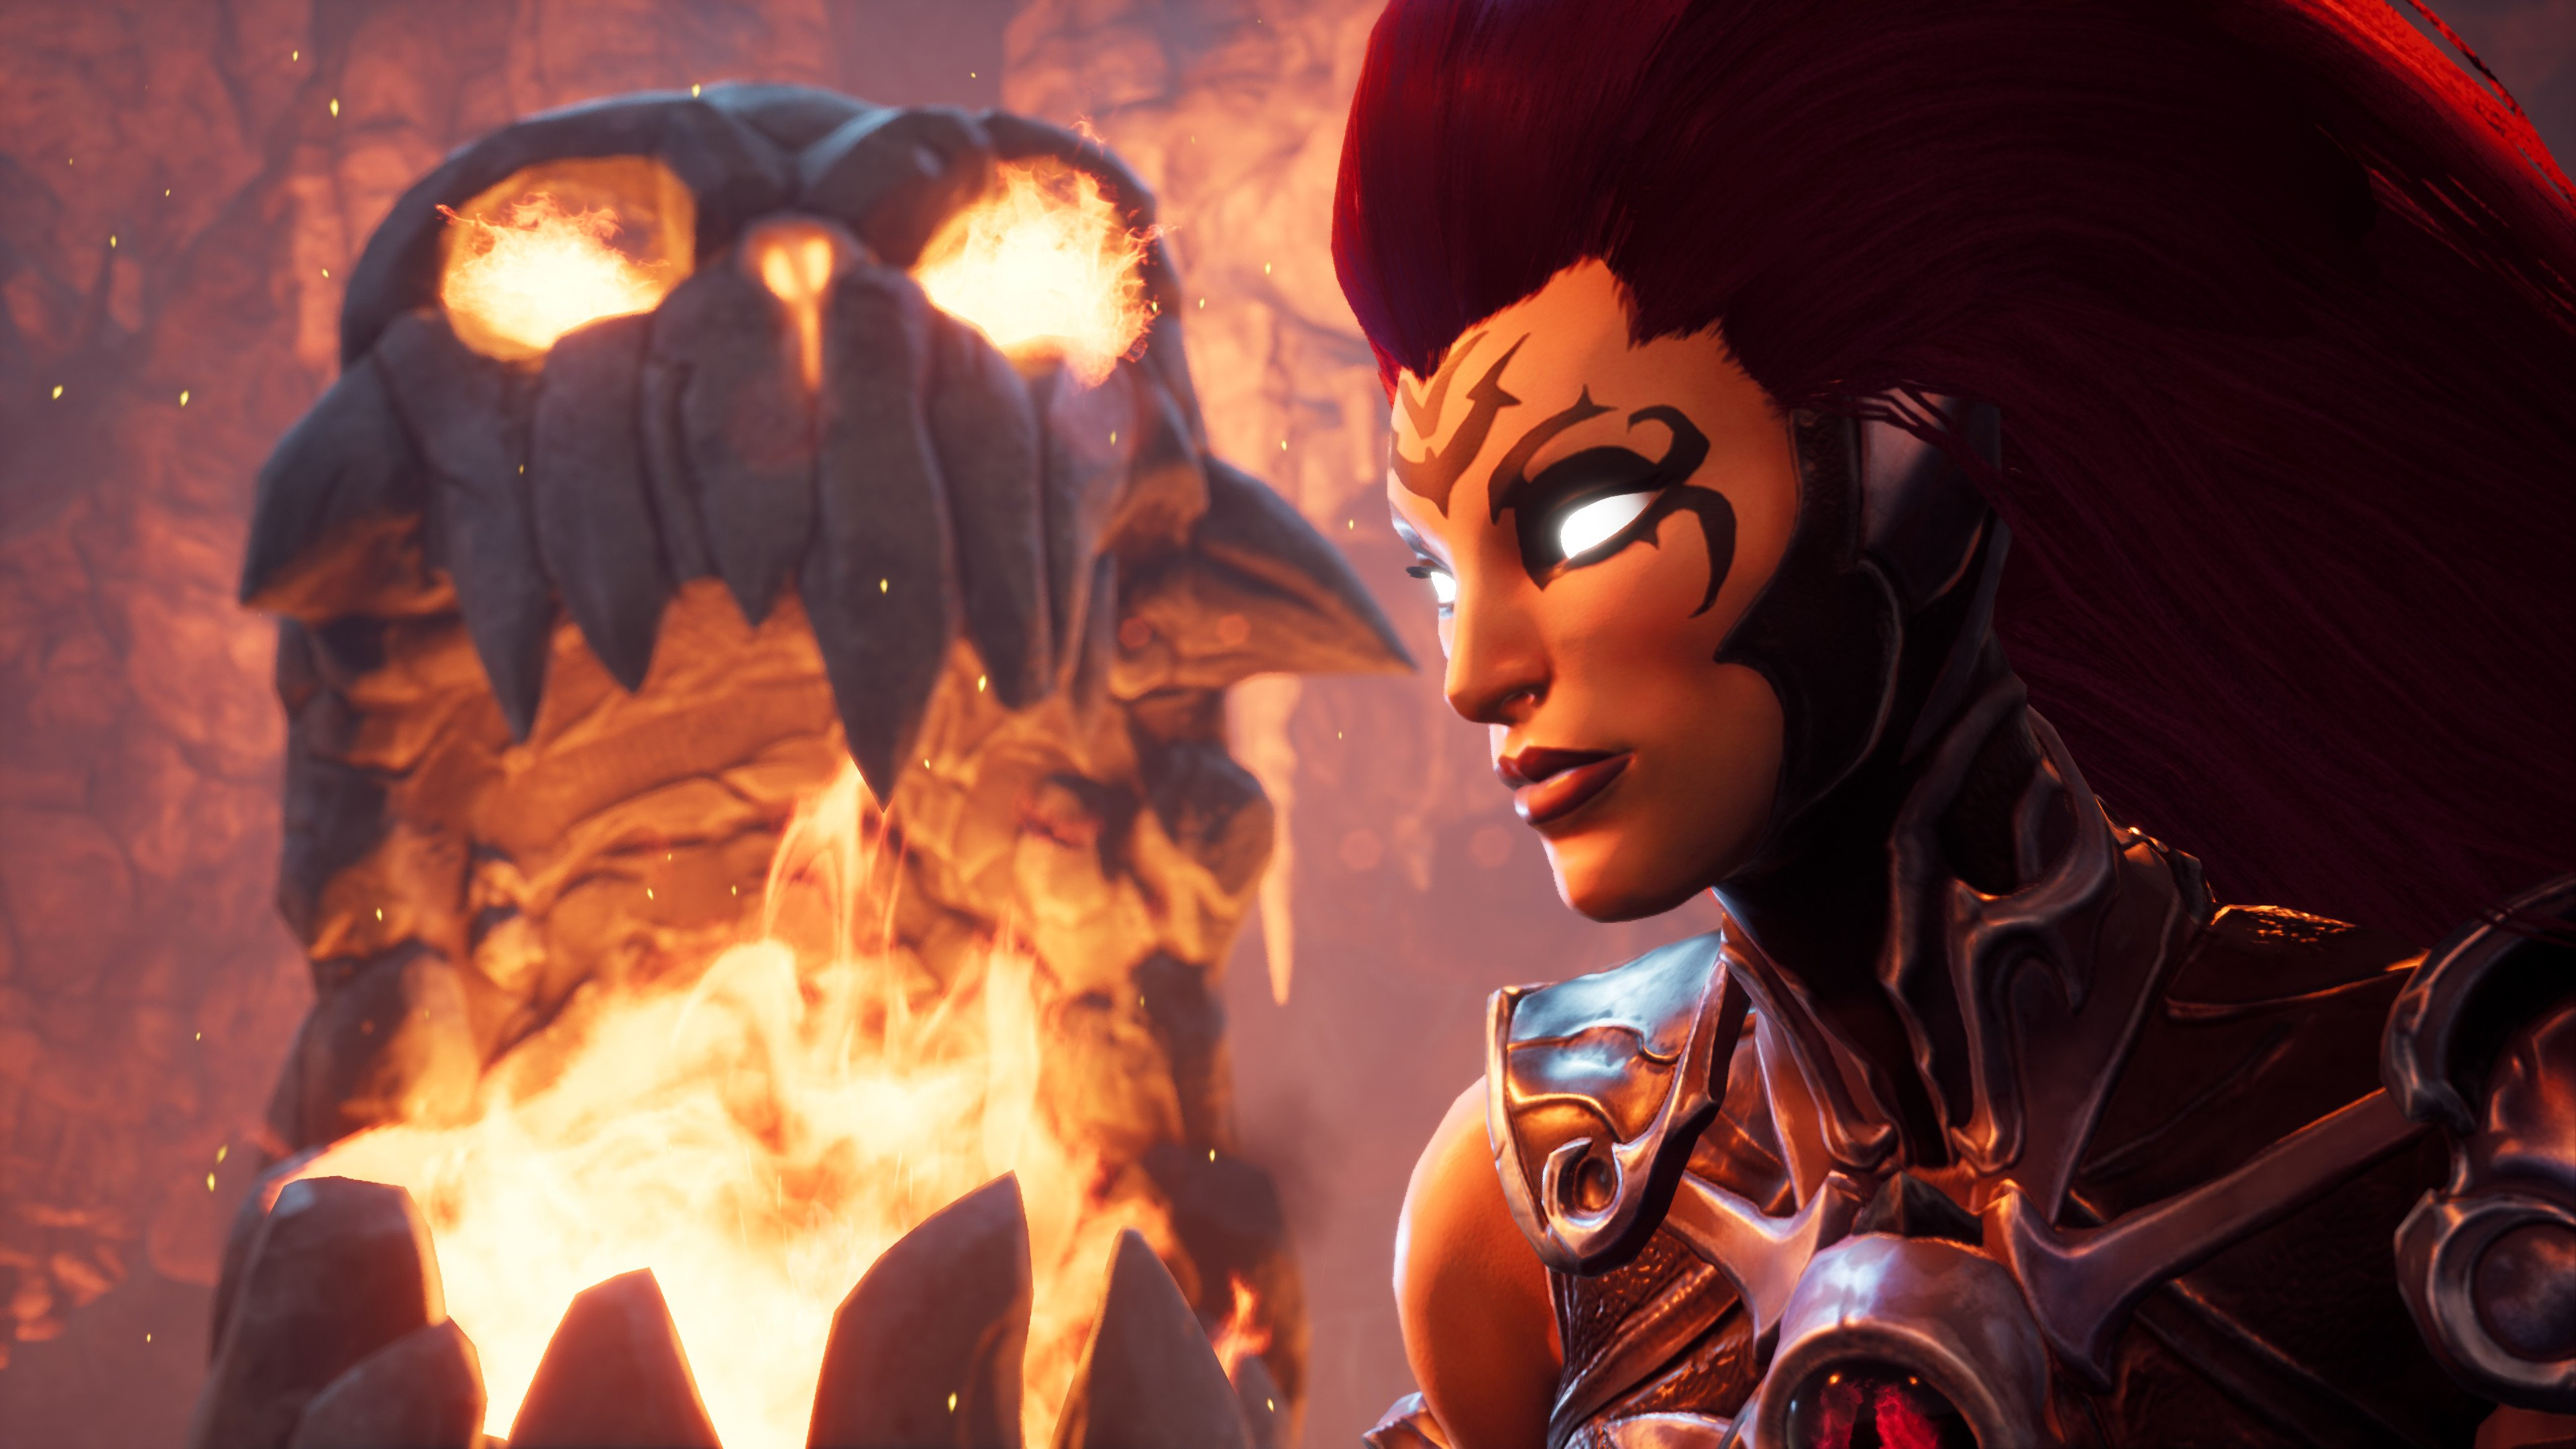 Darksiders 3 review: Hell hath fury | Shacknews